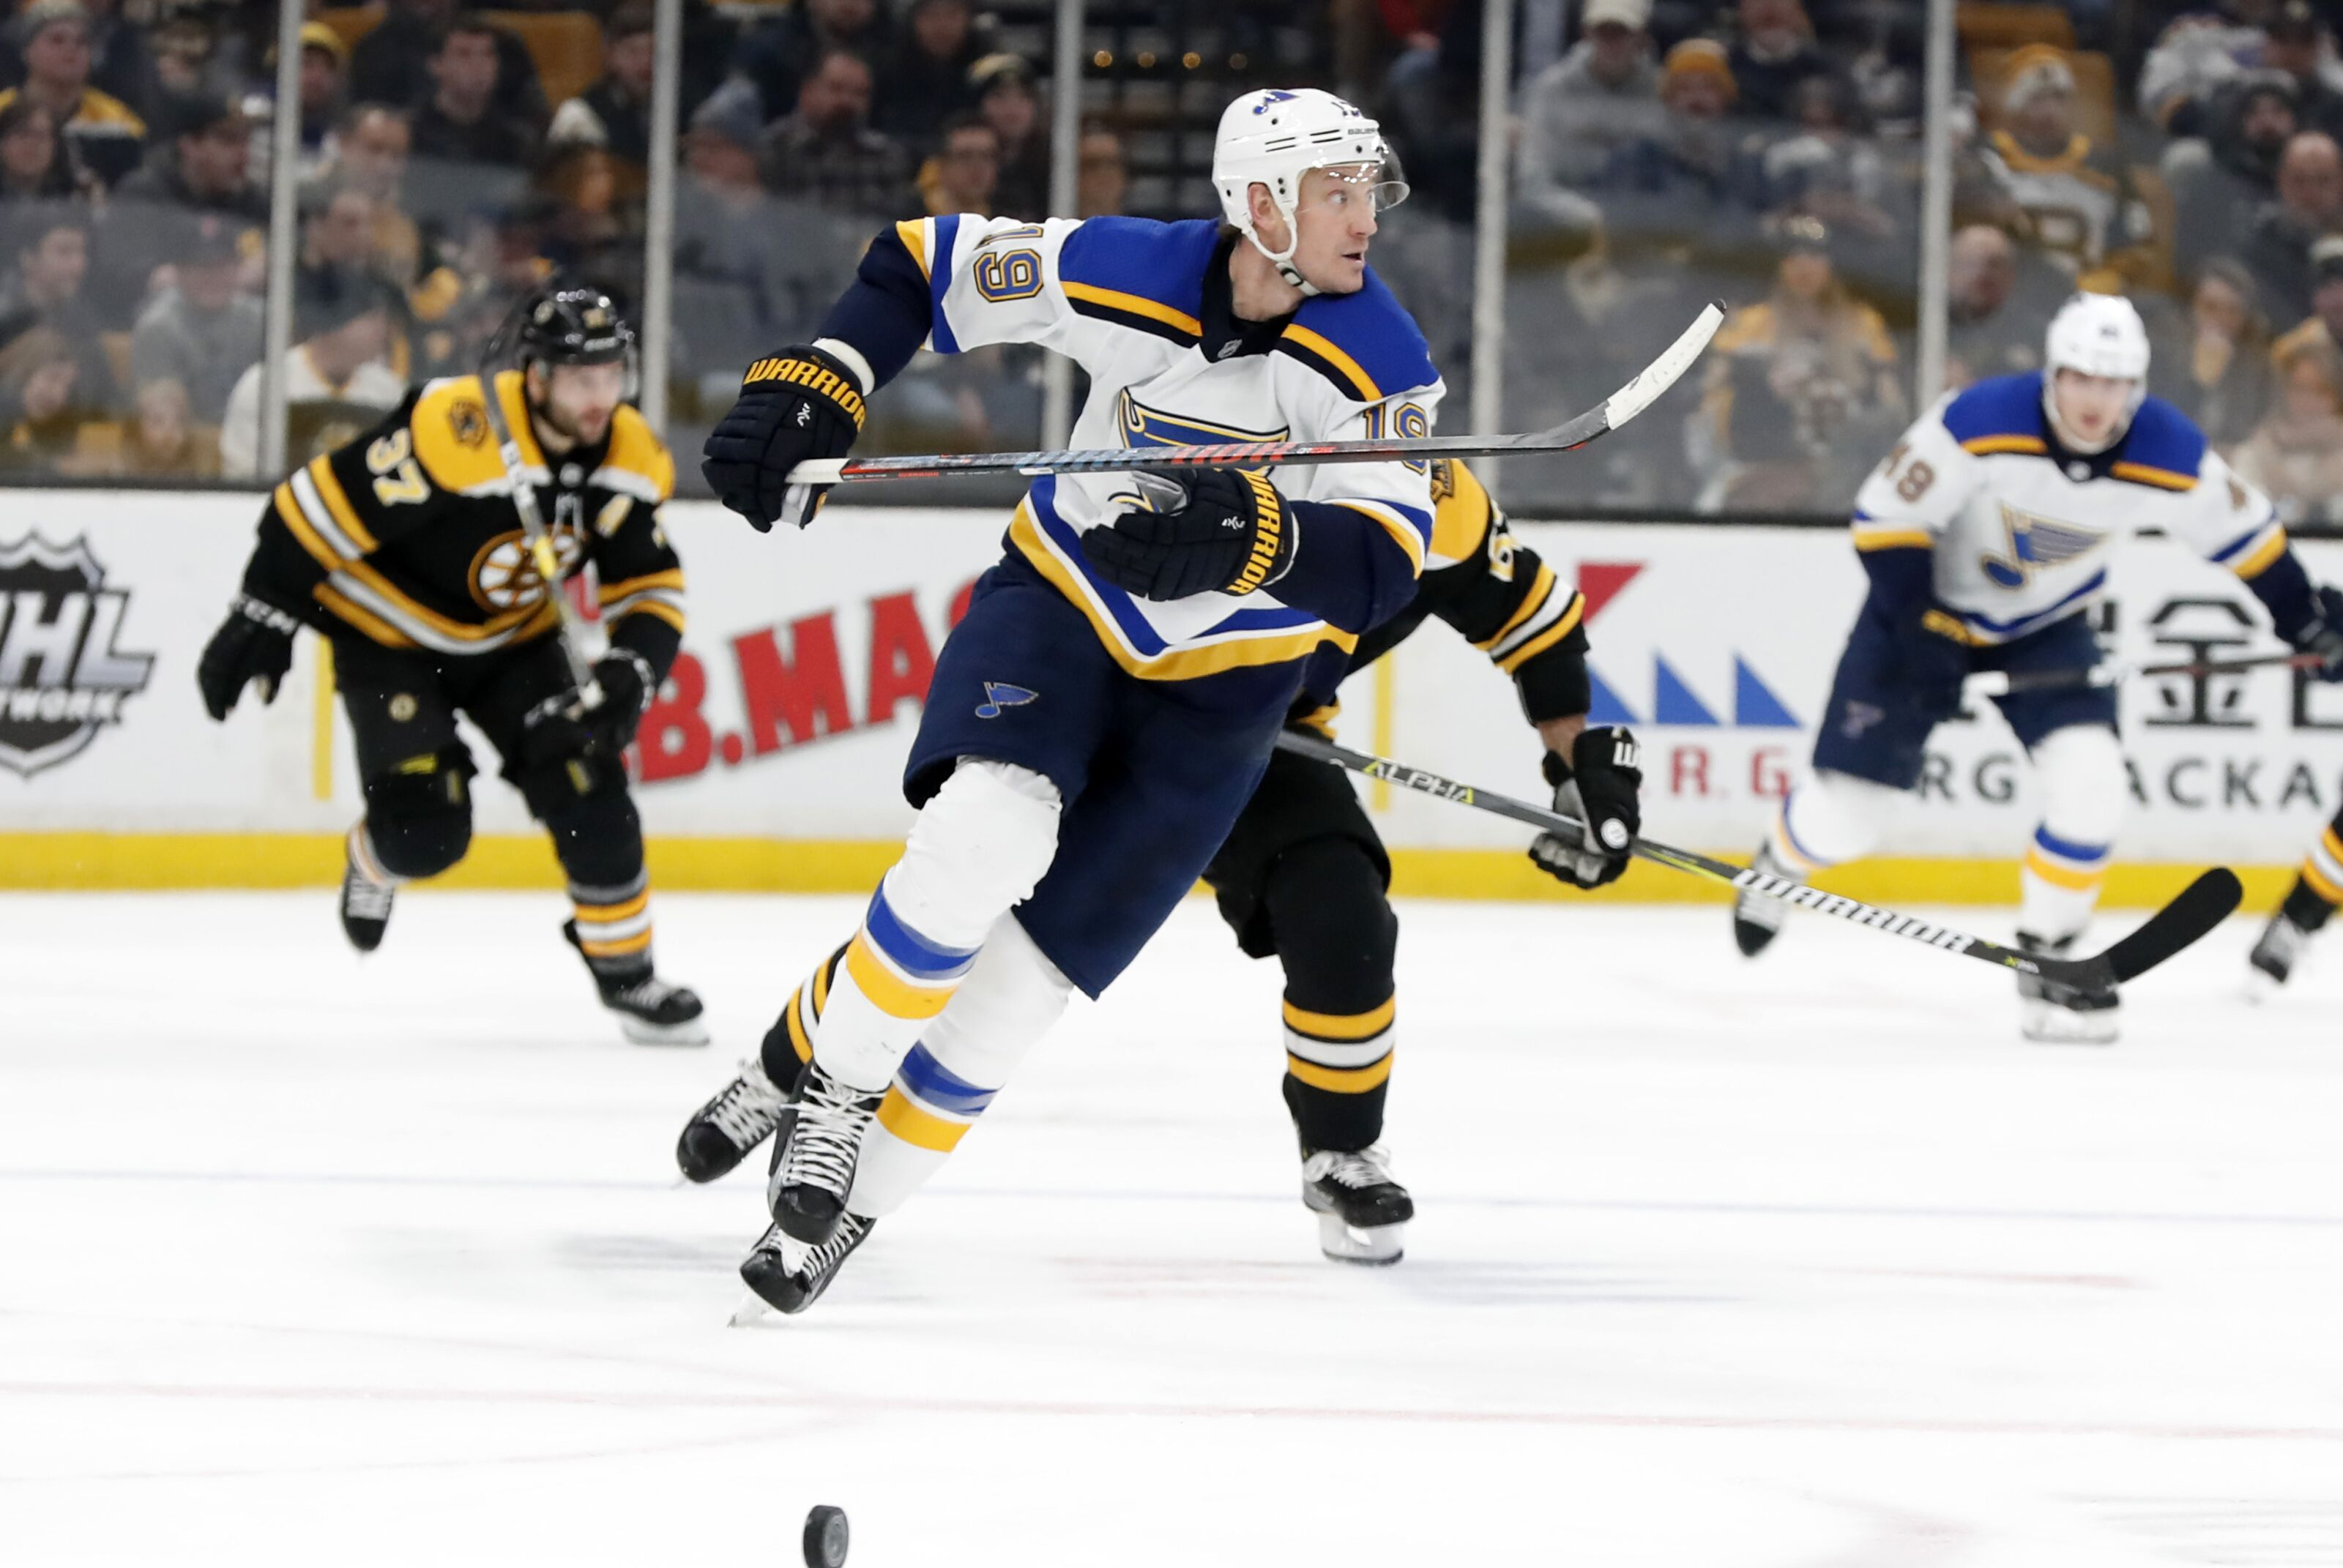 St. Louis Blues: 4 Reasons To Fear The Boston Bruins And 3 Why Not To